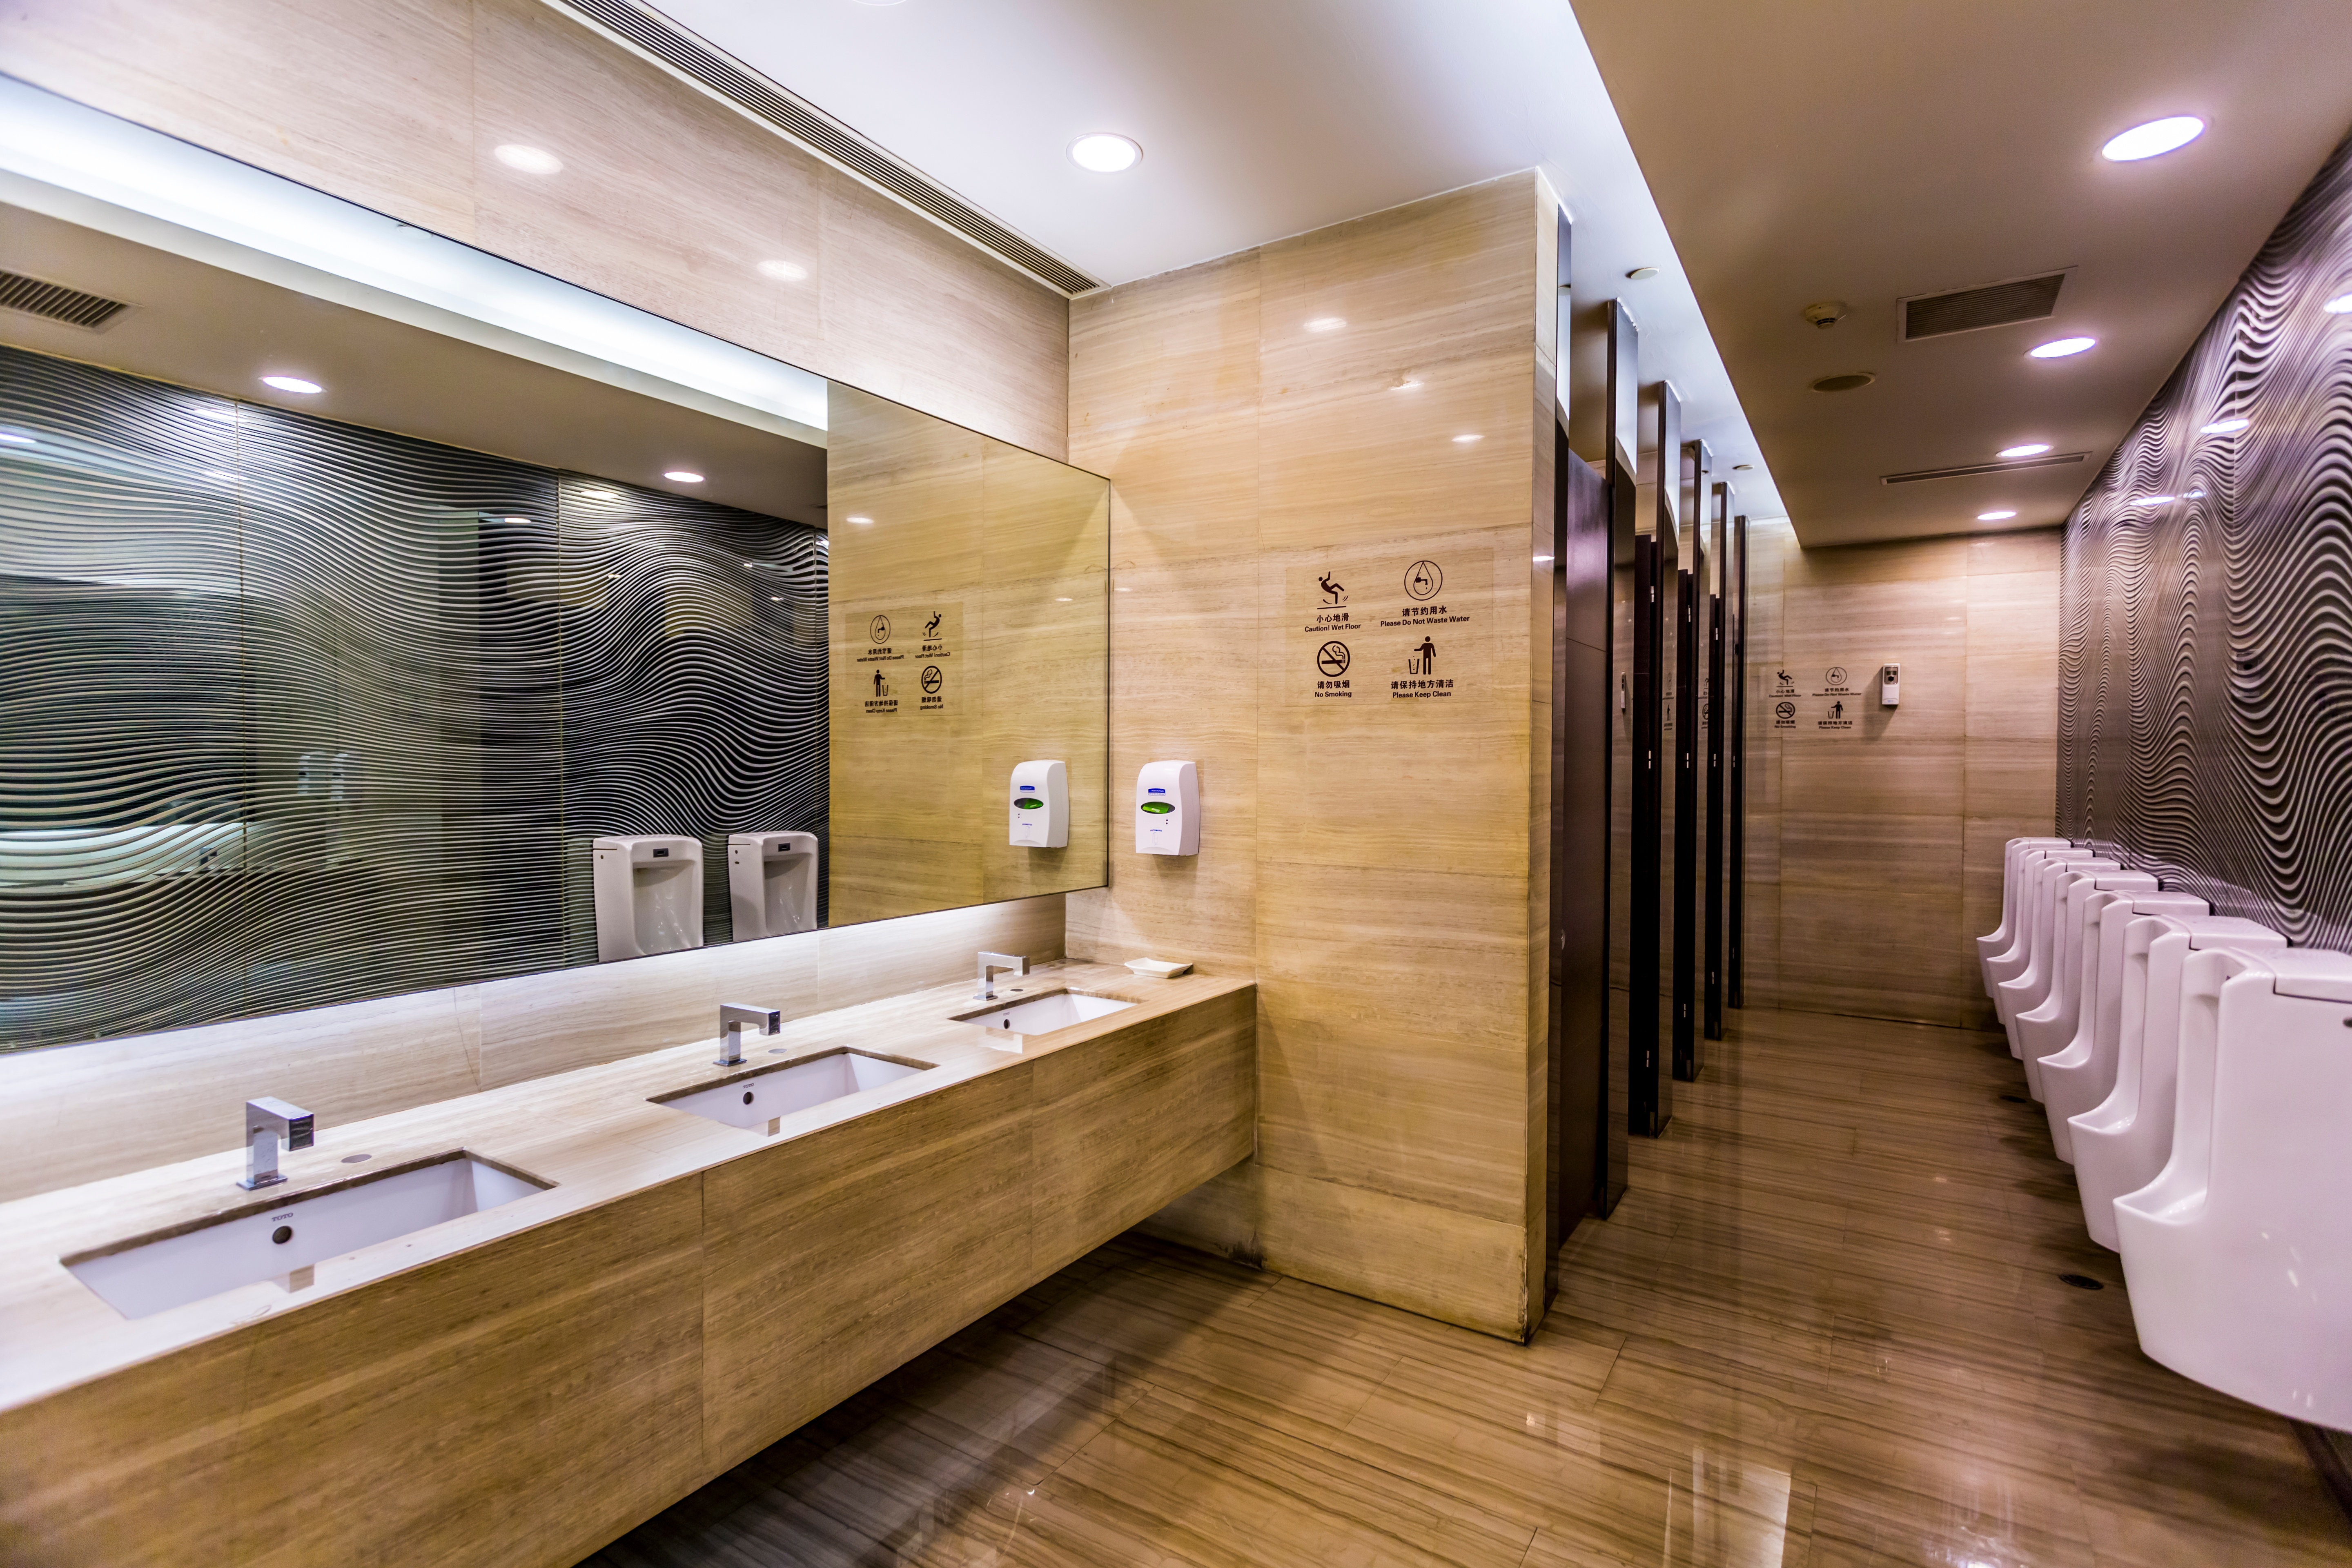 How To Properly Clean Your Financial Institution Building's Washrooms